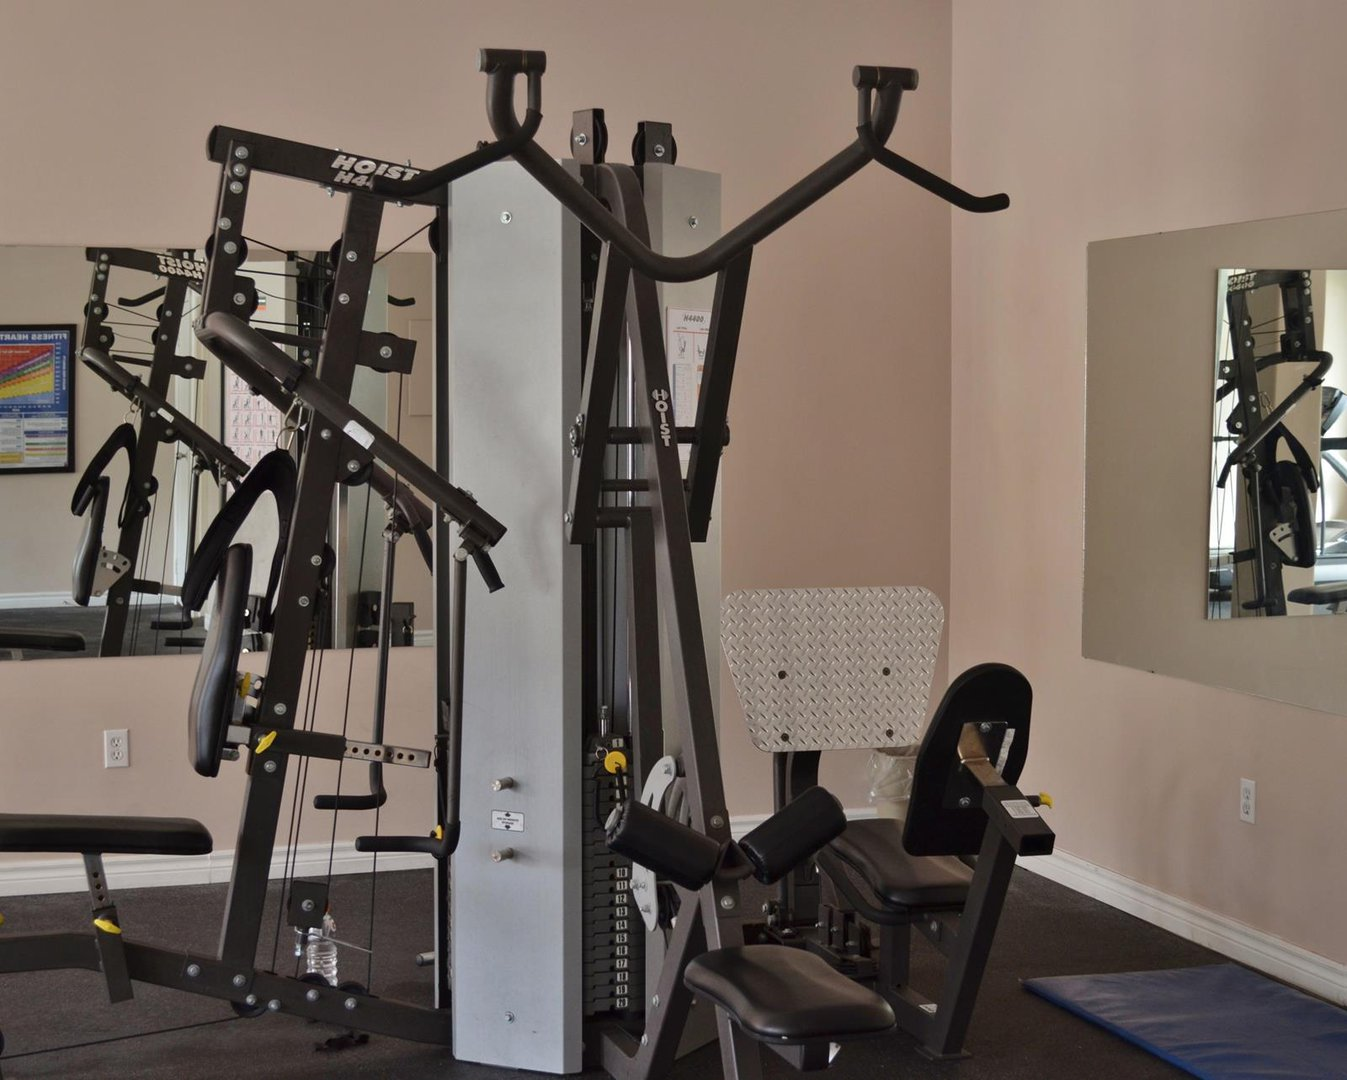 Apartment for rent at 96 Highfield Park Drive G, Dartmouth, NS. This is the gym.